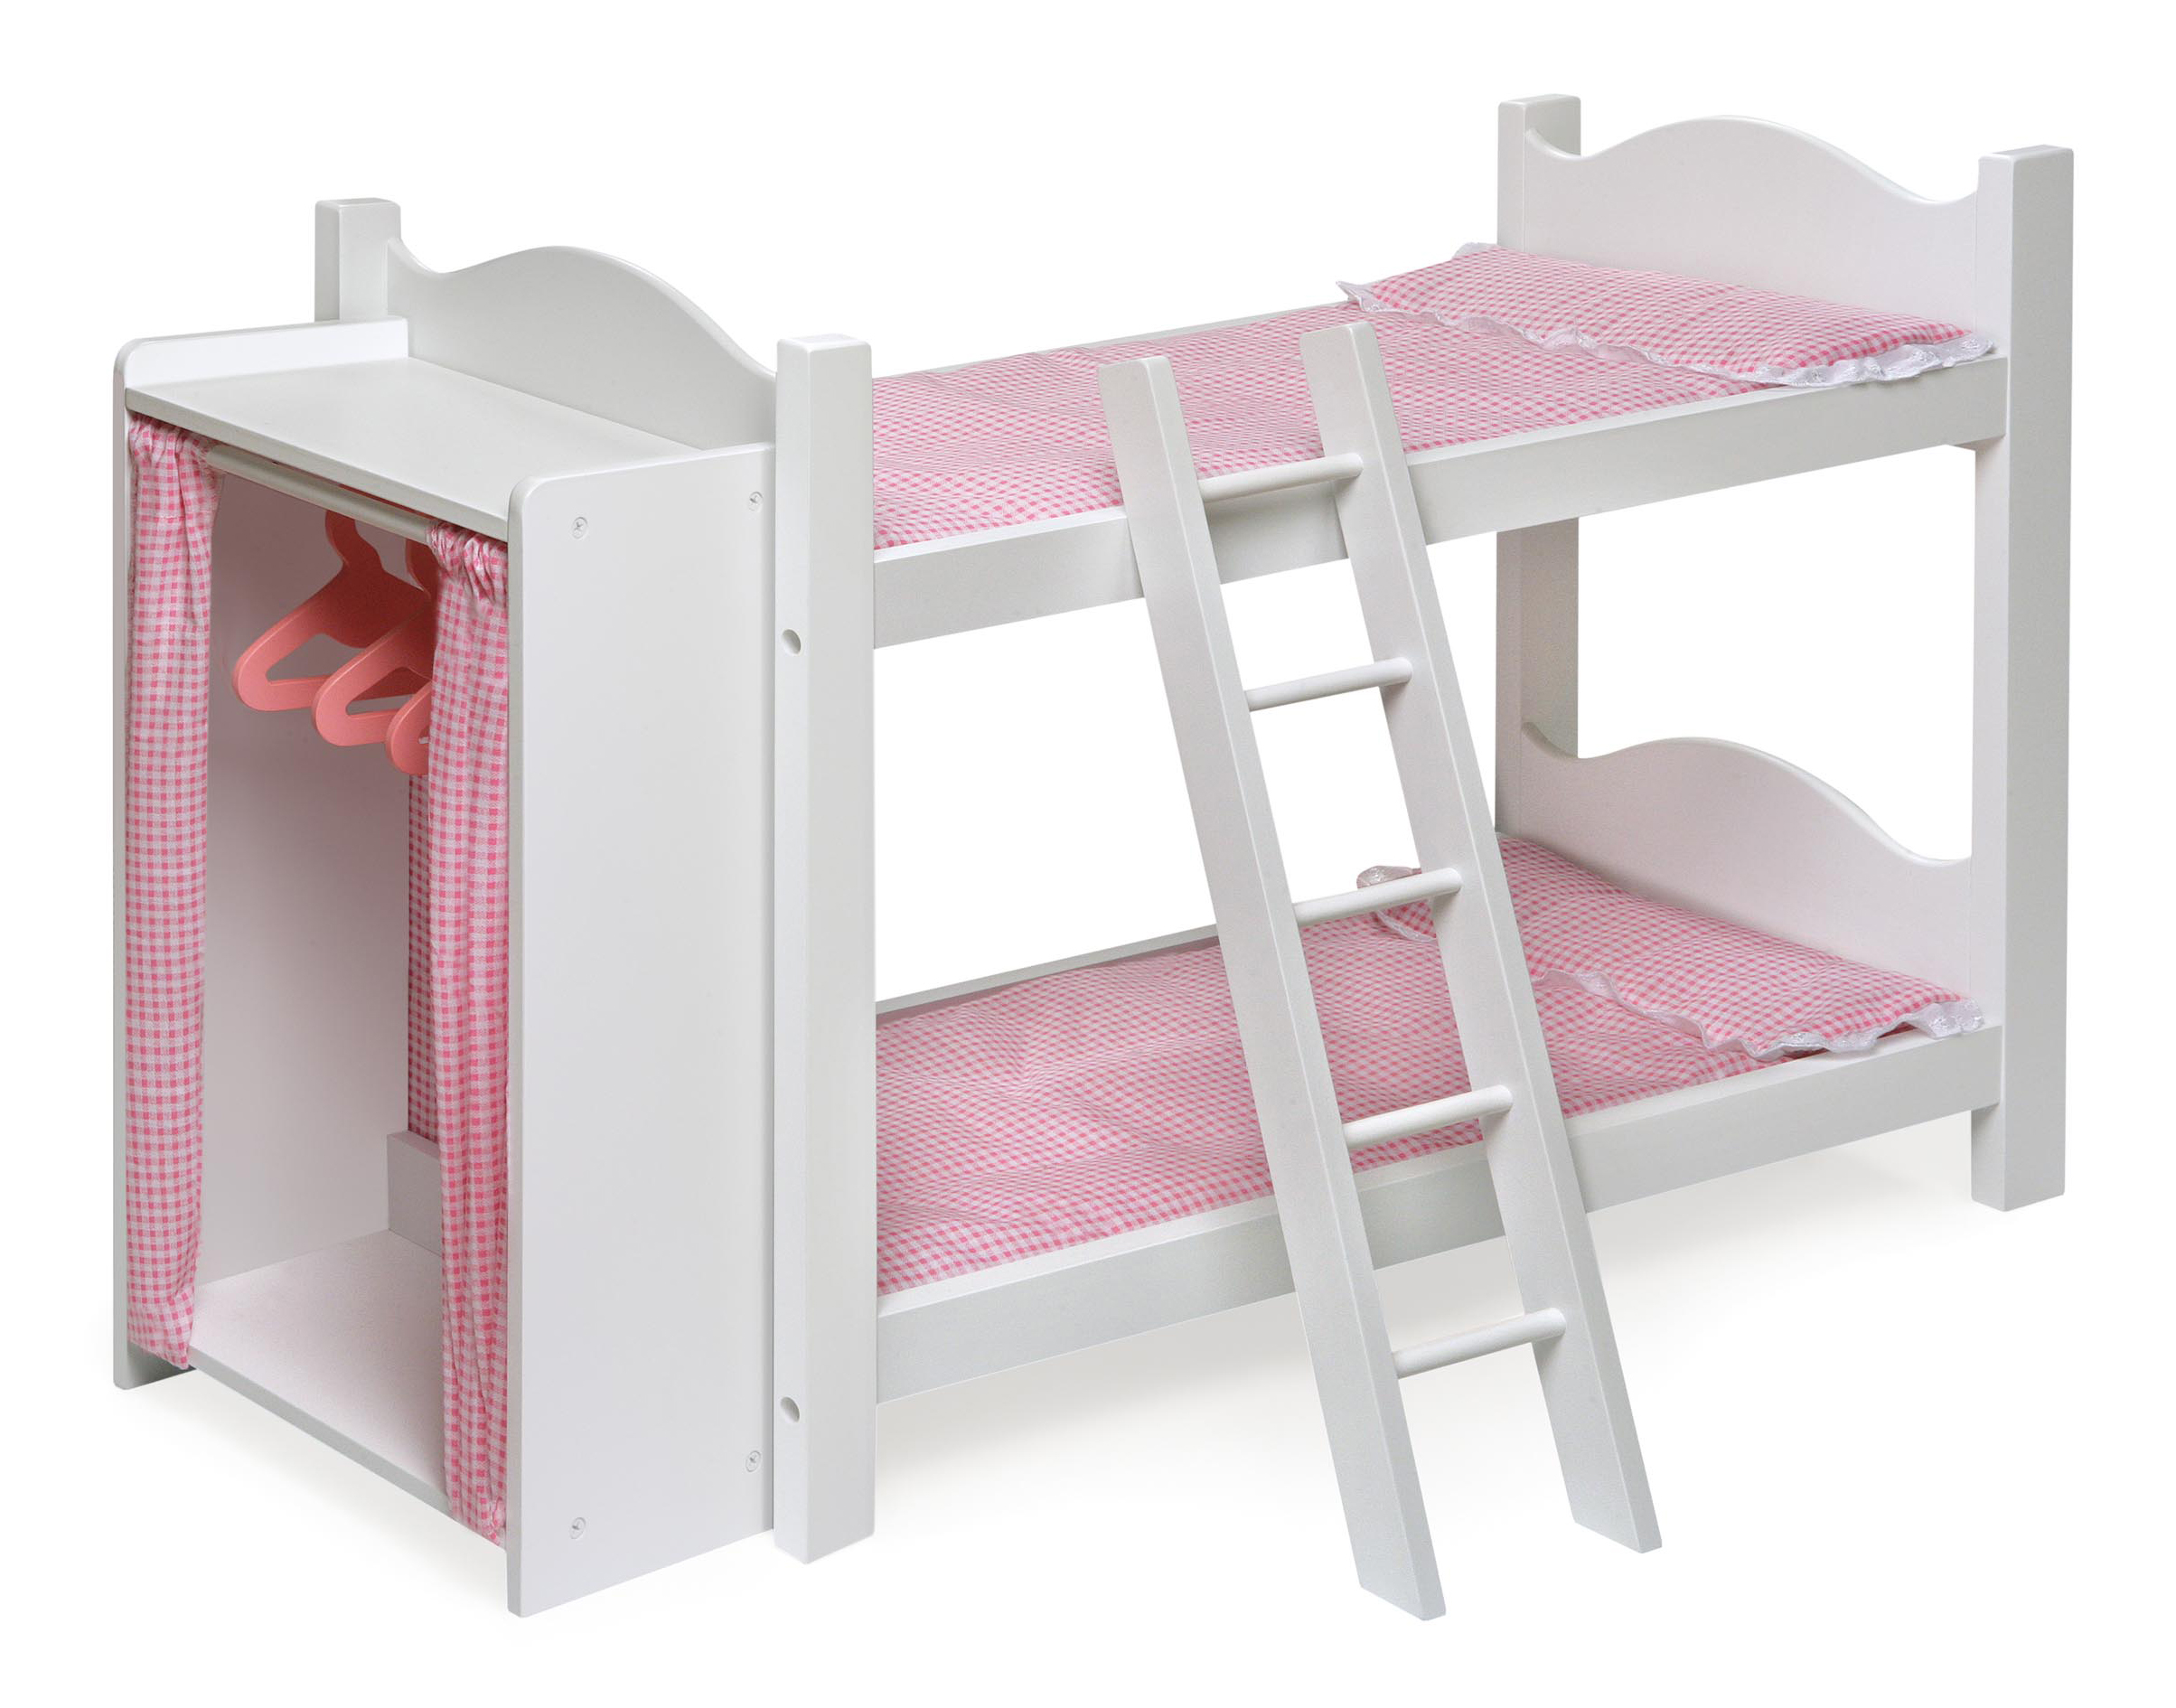 Ikea Spoling Changing Table | Baby Changing Table Walmart | Bitty Baby Changing Table